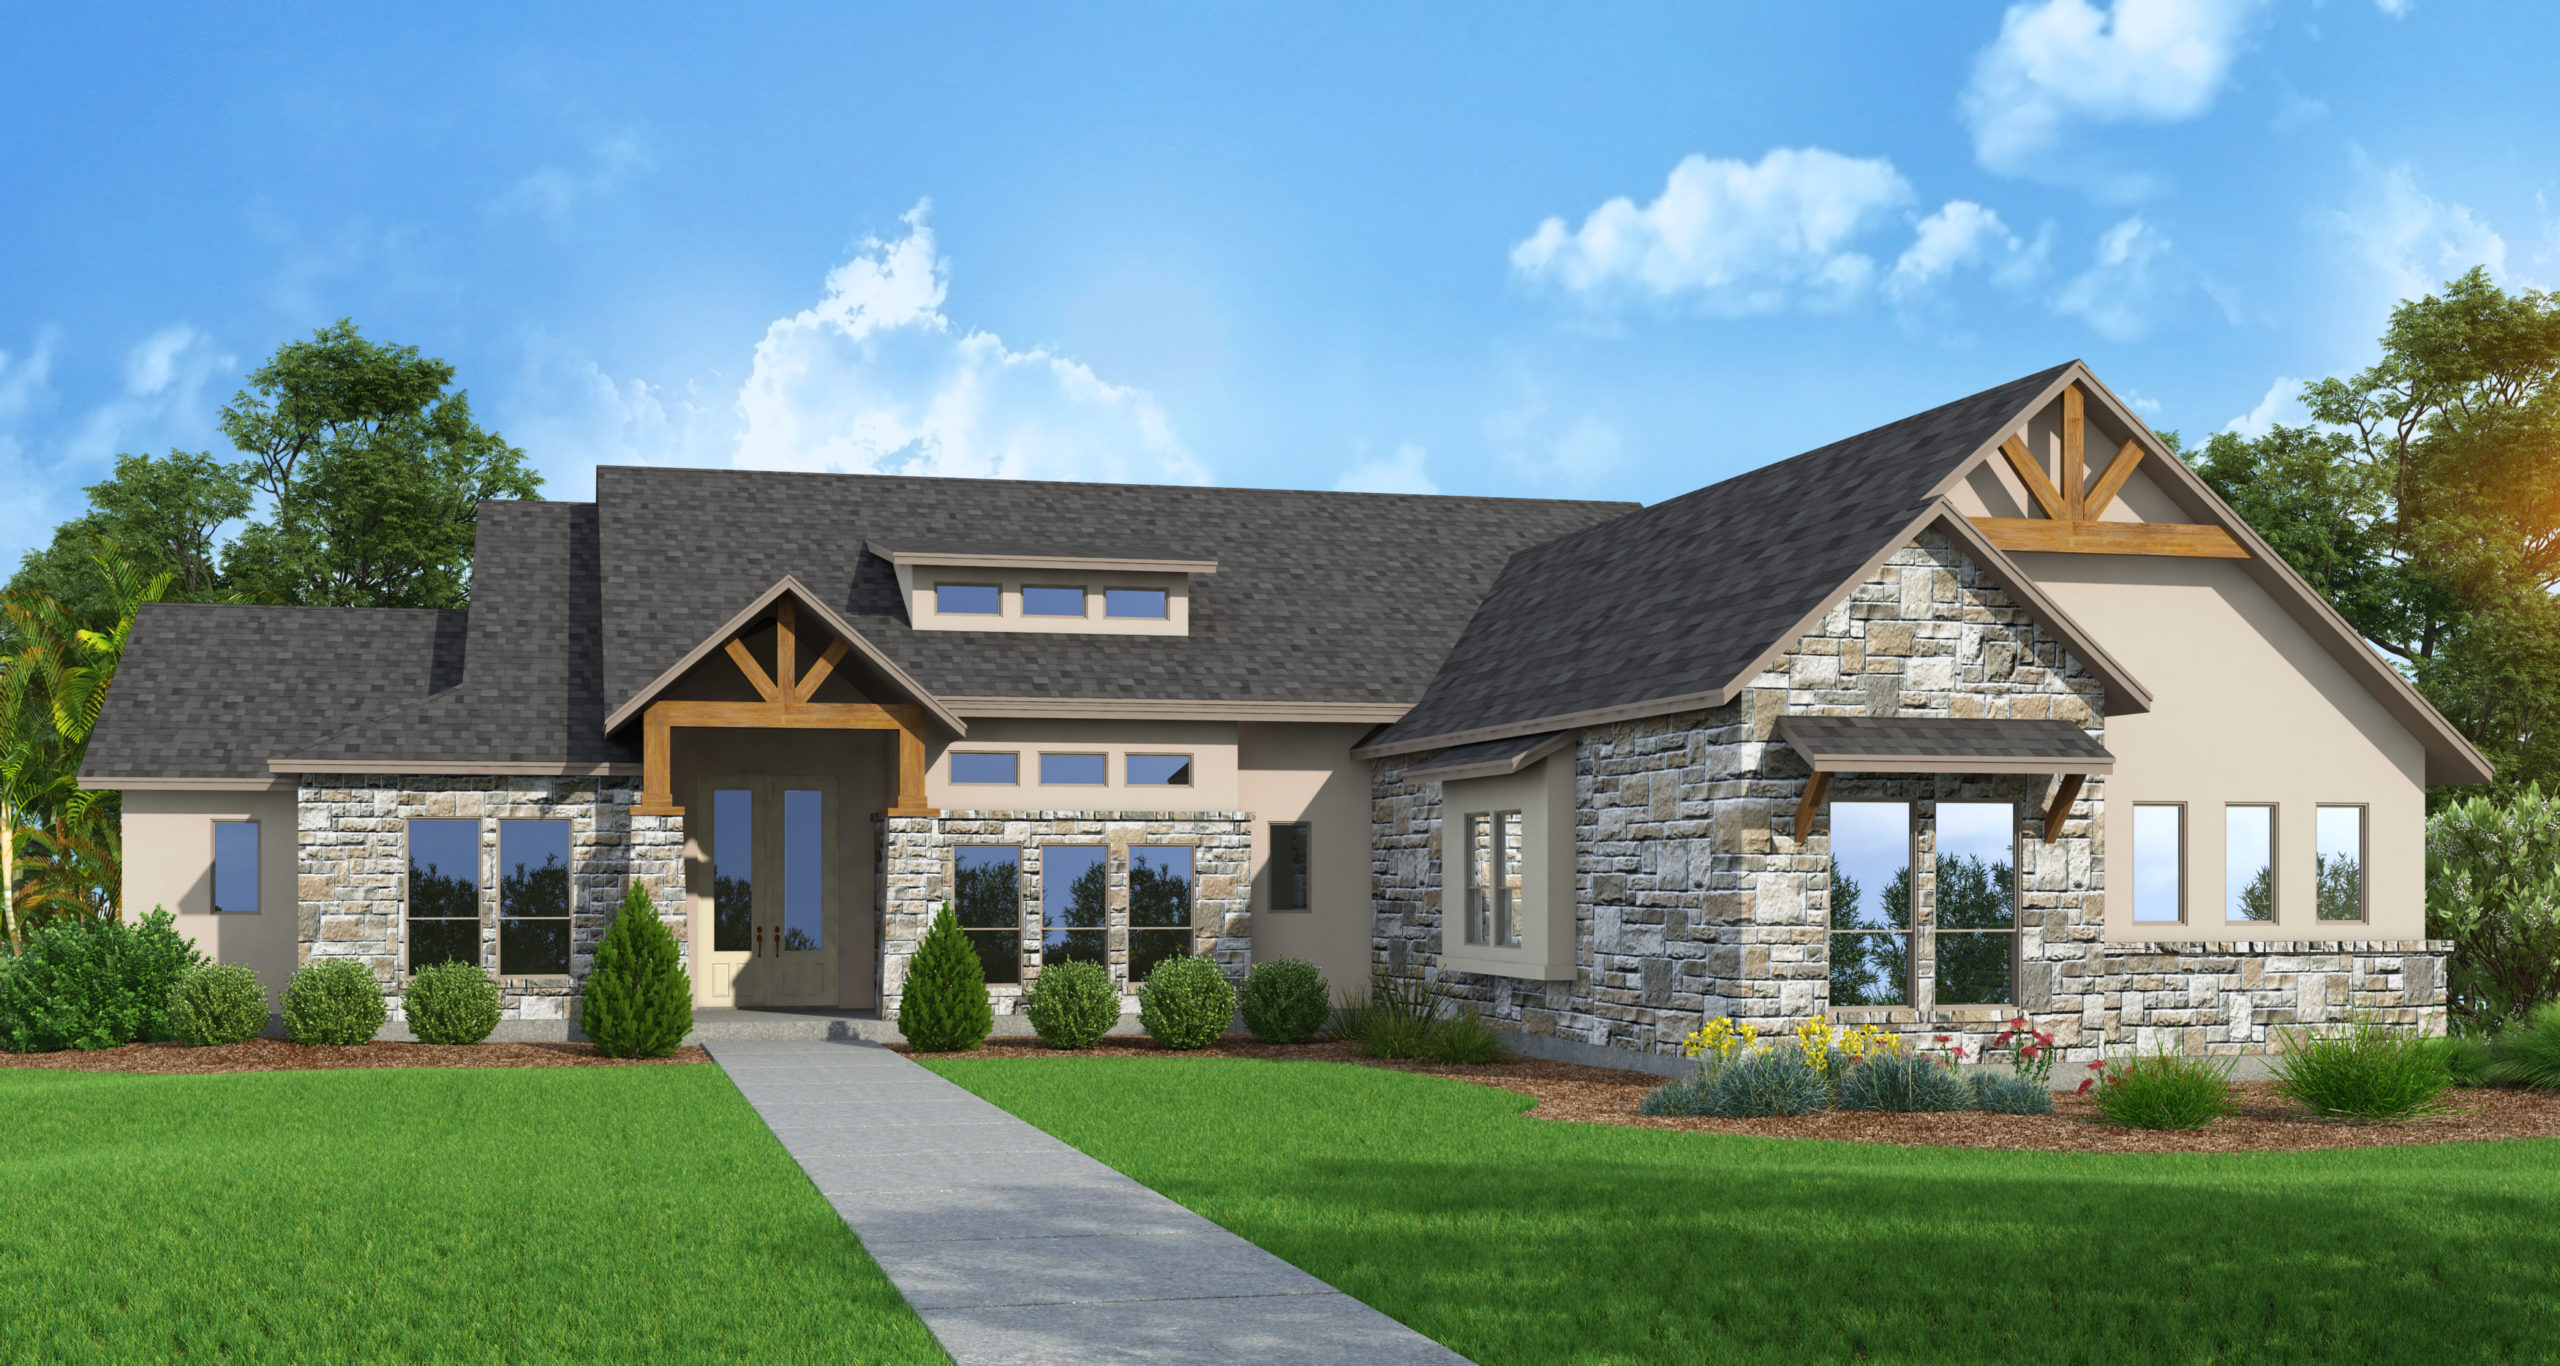 New Braunfels Custom Home - Vintage Oaks Model Home